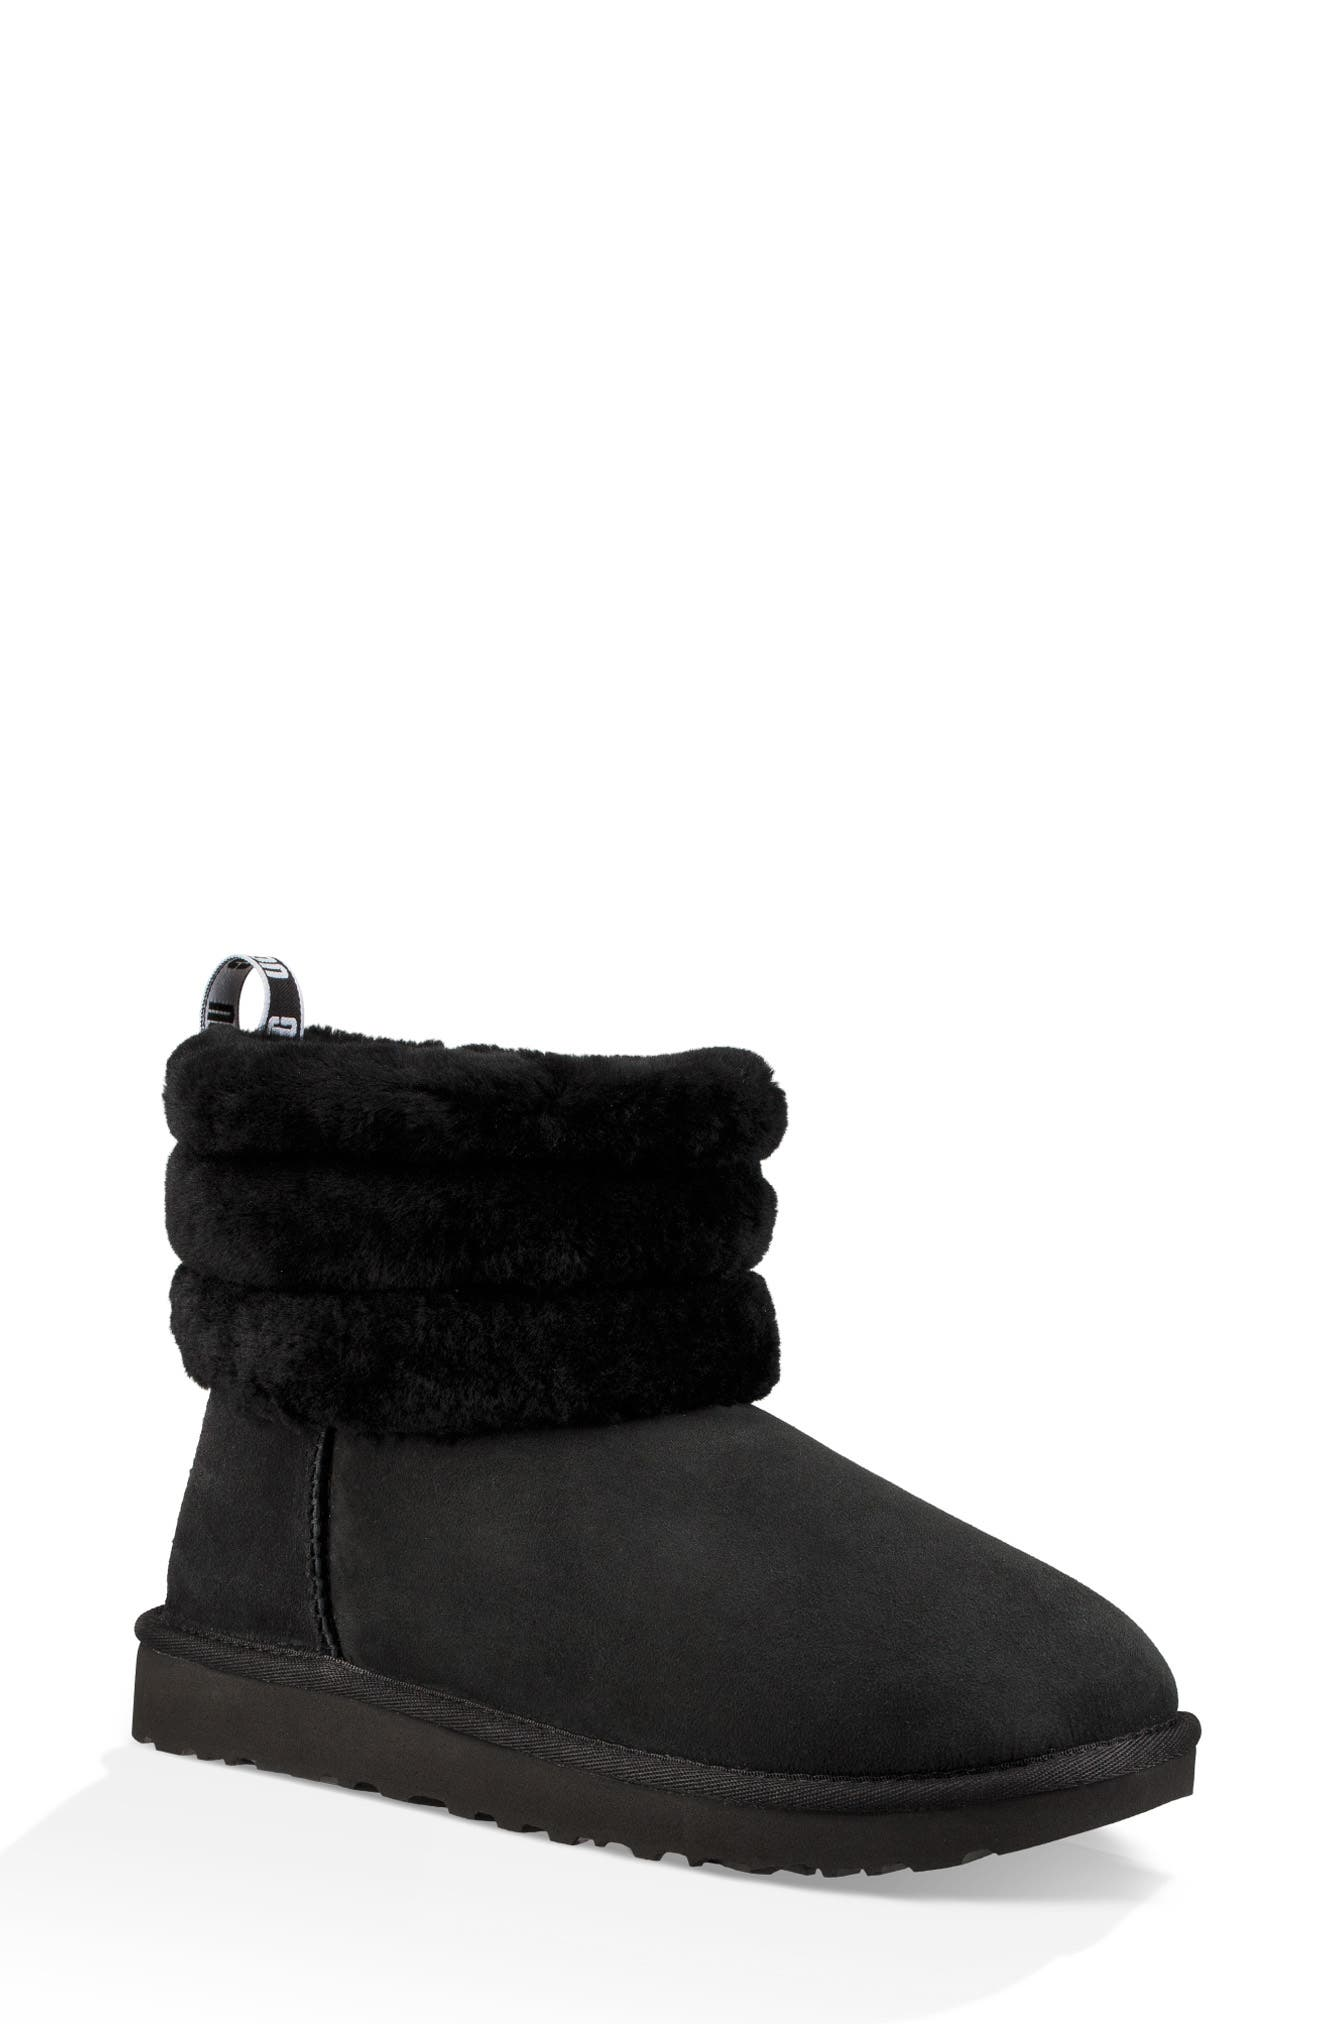 ugg classic mini black friday